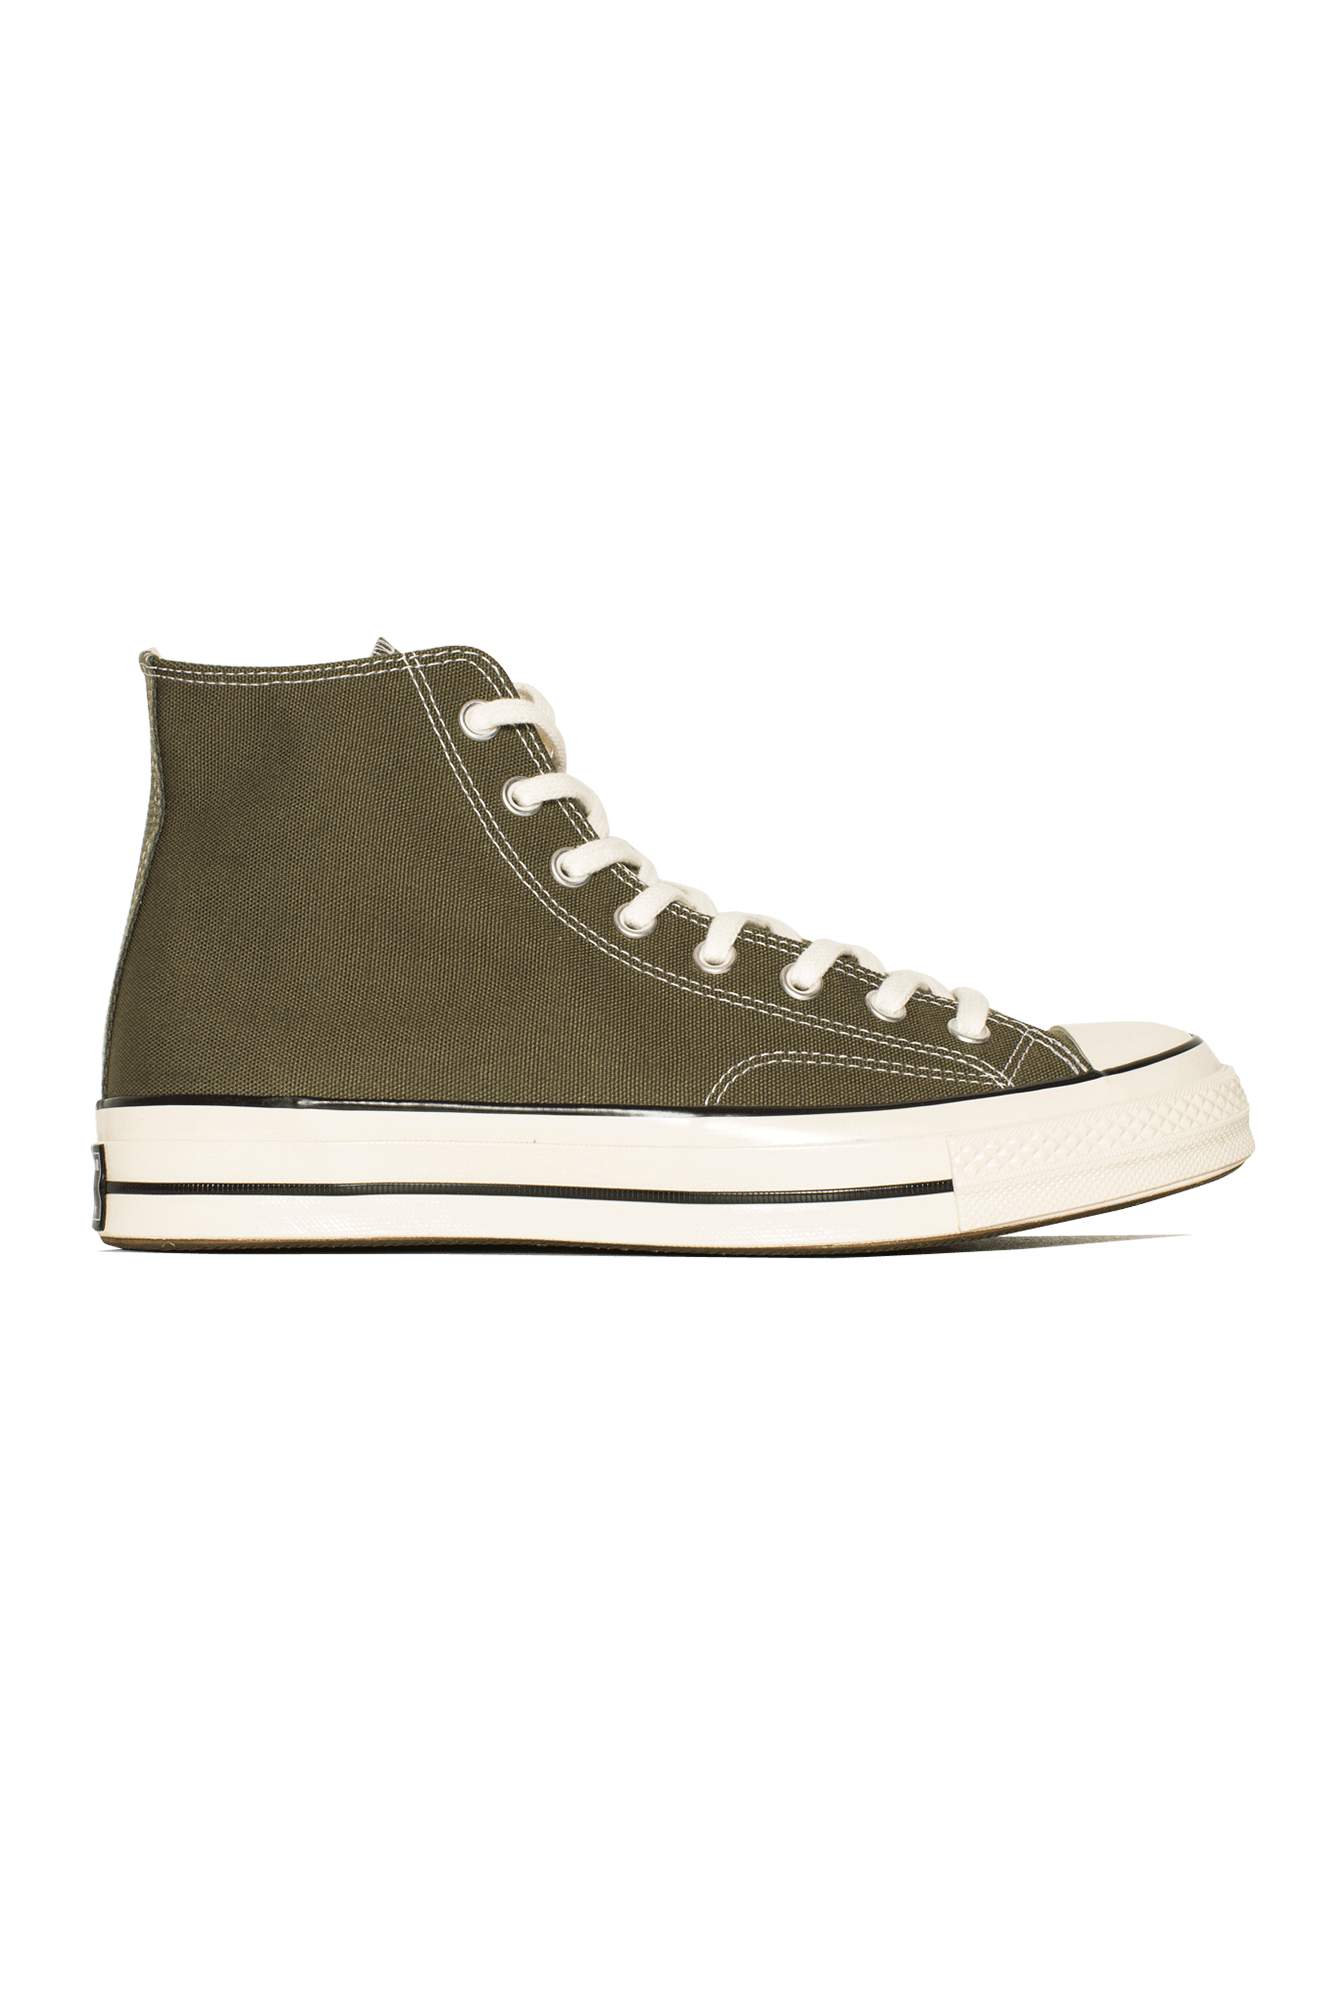 Converse Sneakers Chuck 70 Hi Green 162052C#000#C0013#6 - One Block Down